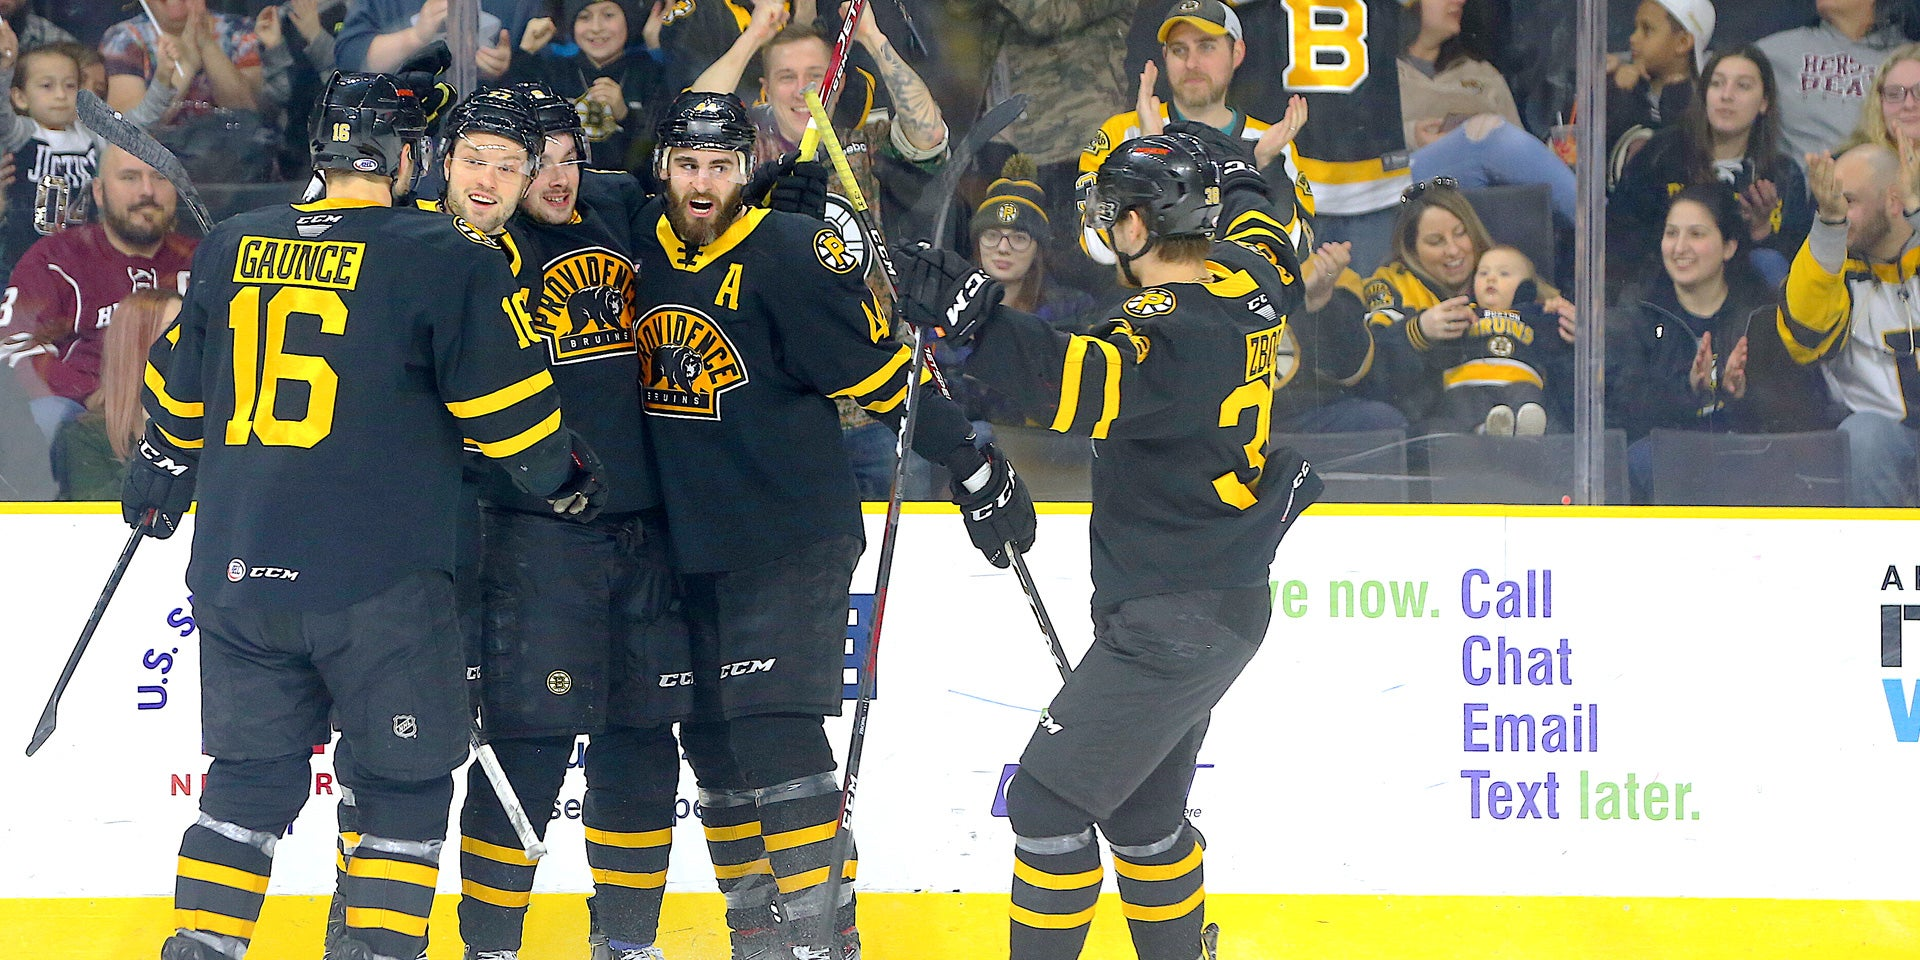 P-Bruins Tie Franchise Record, Beat Hershey 3-2 SO